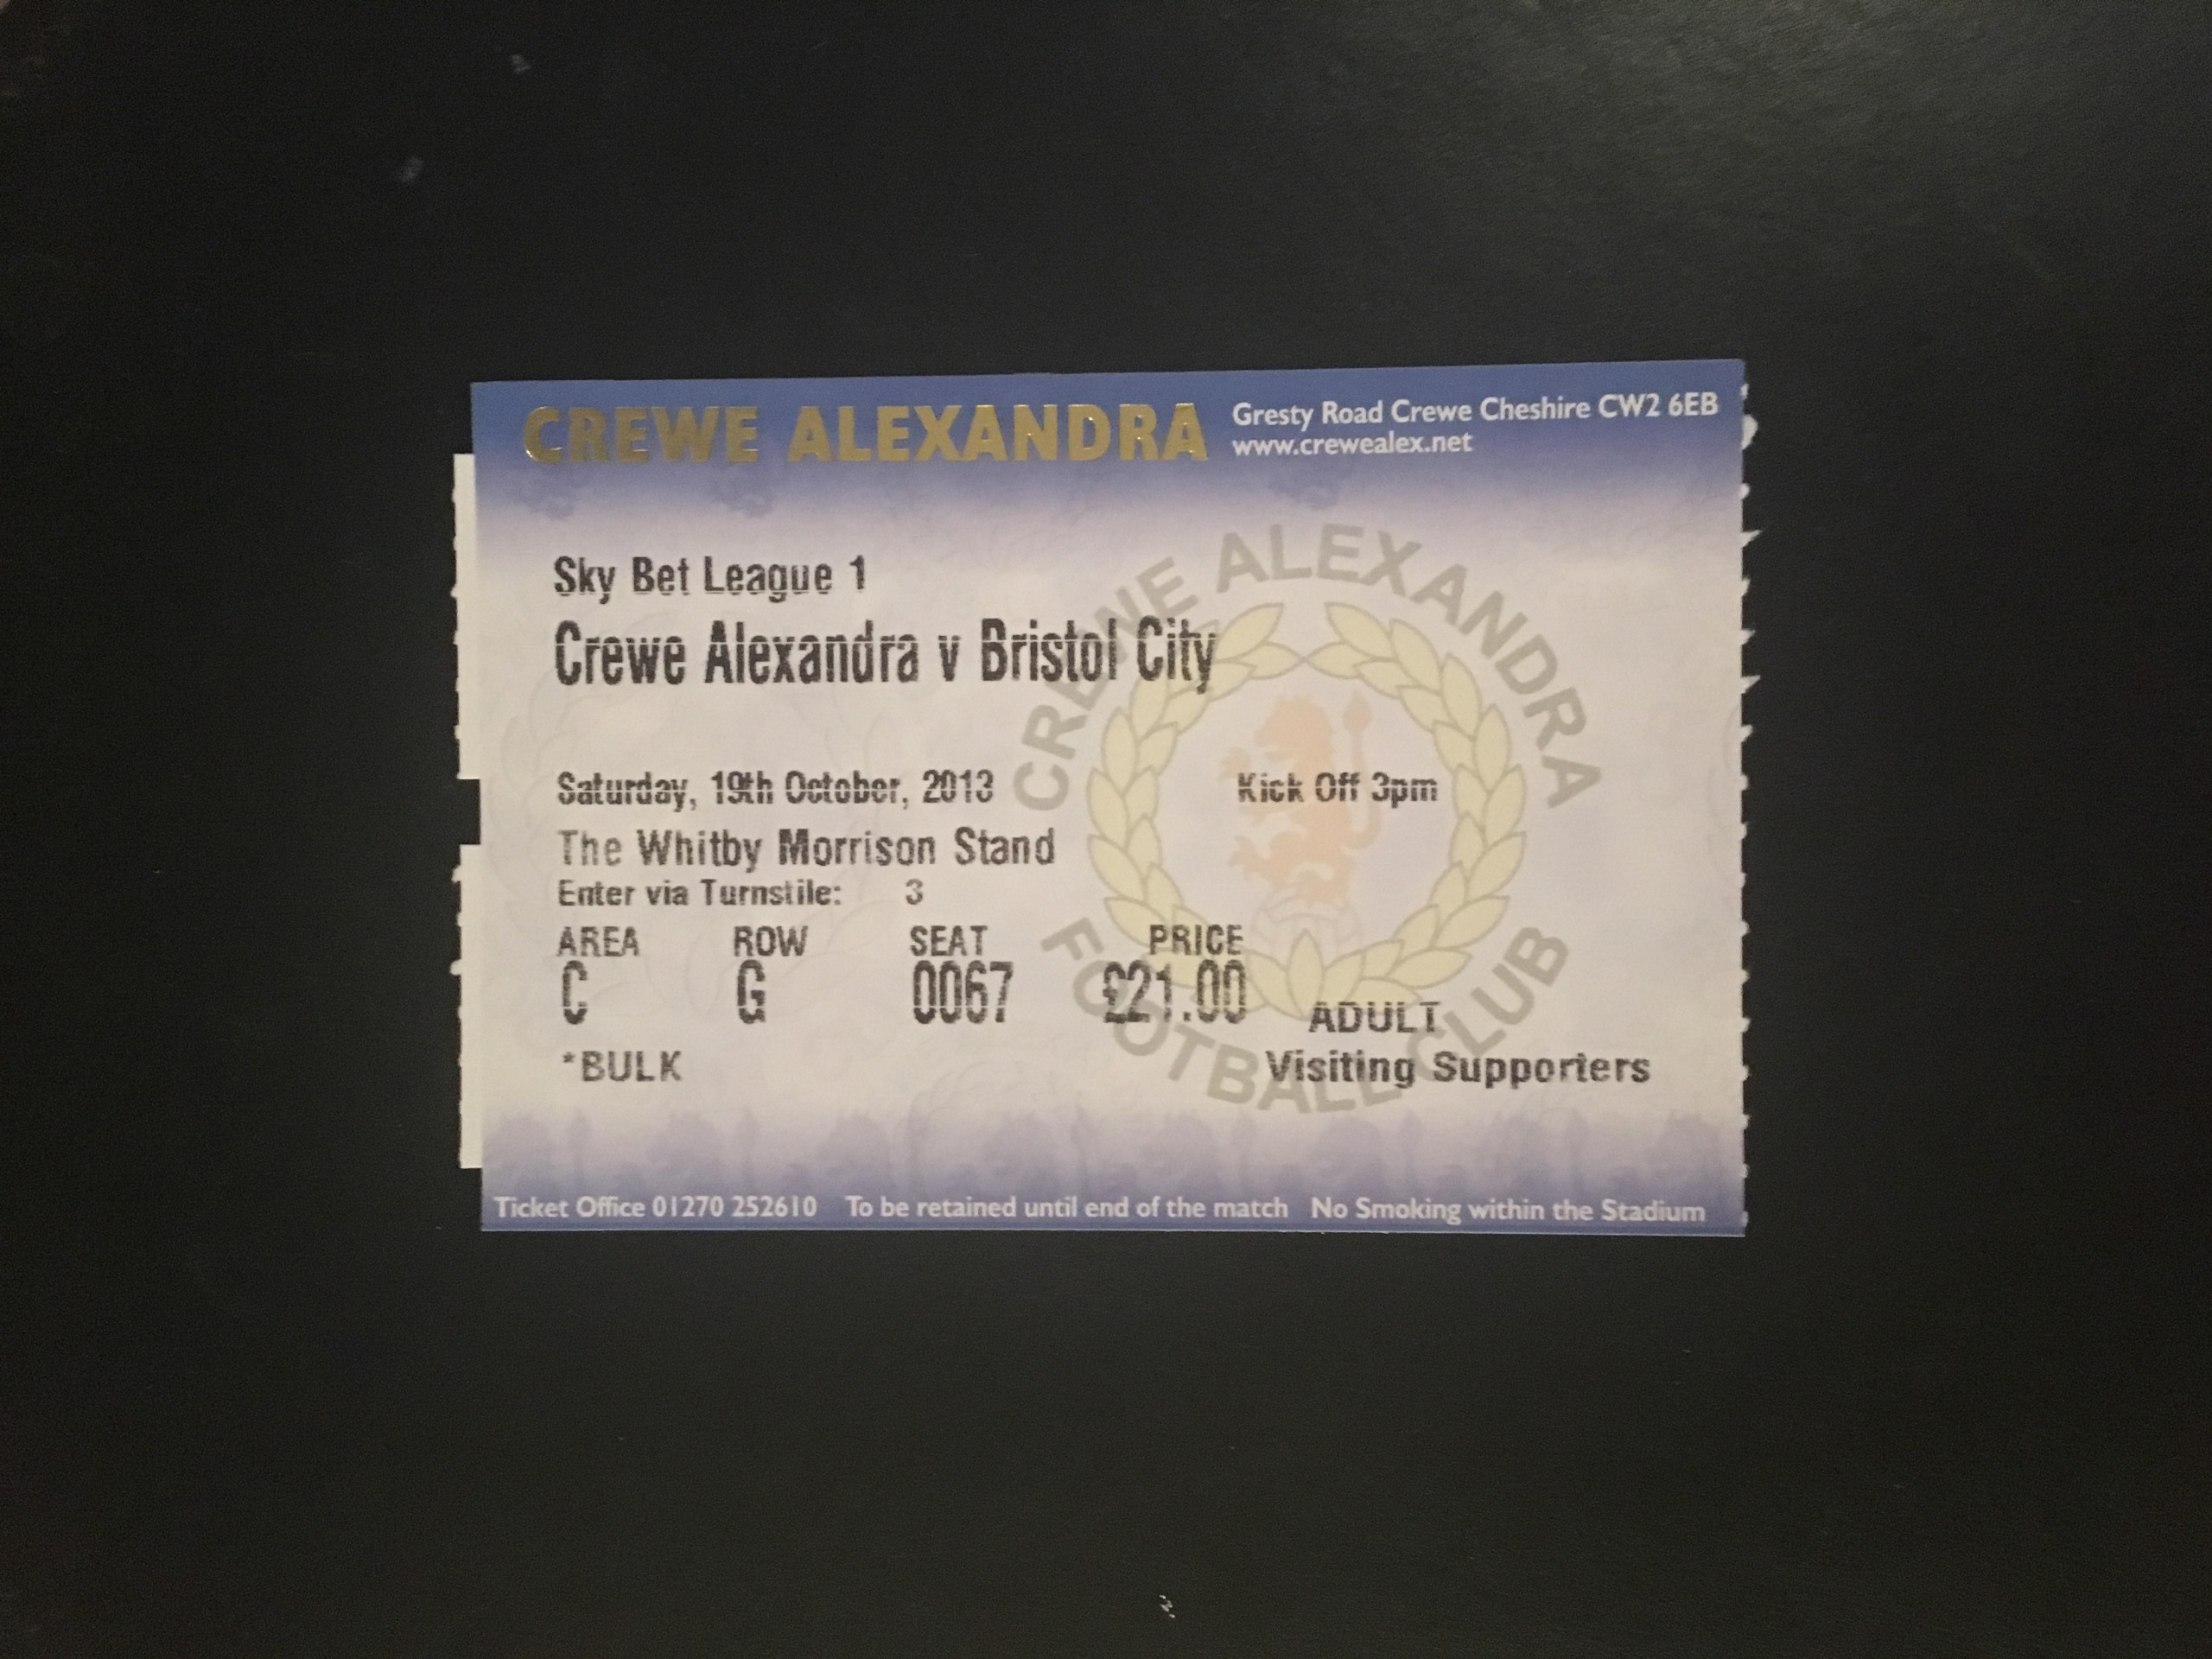 Crewe Alexandria v Bristol City 19-10-2013 Ticket